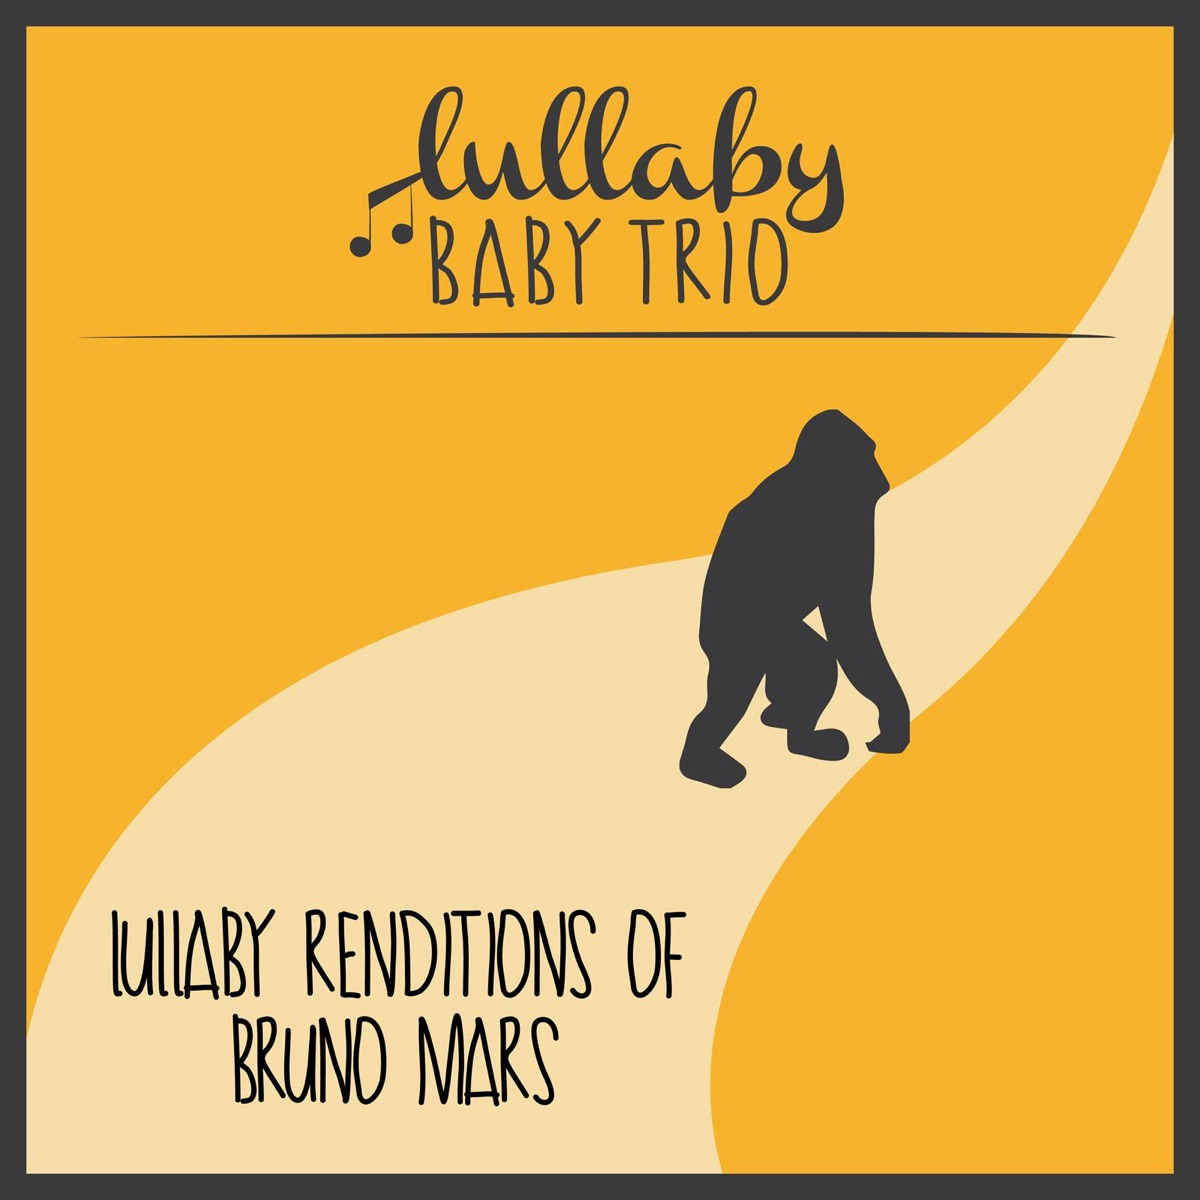 Lullaby Renditions of Bruno Mars Lullaby Baby Trio CD cover